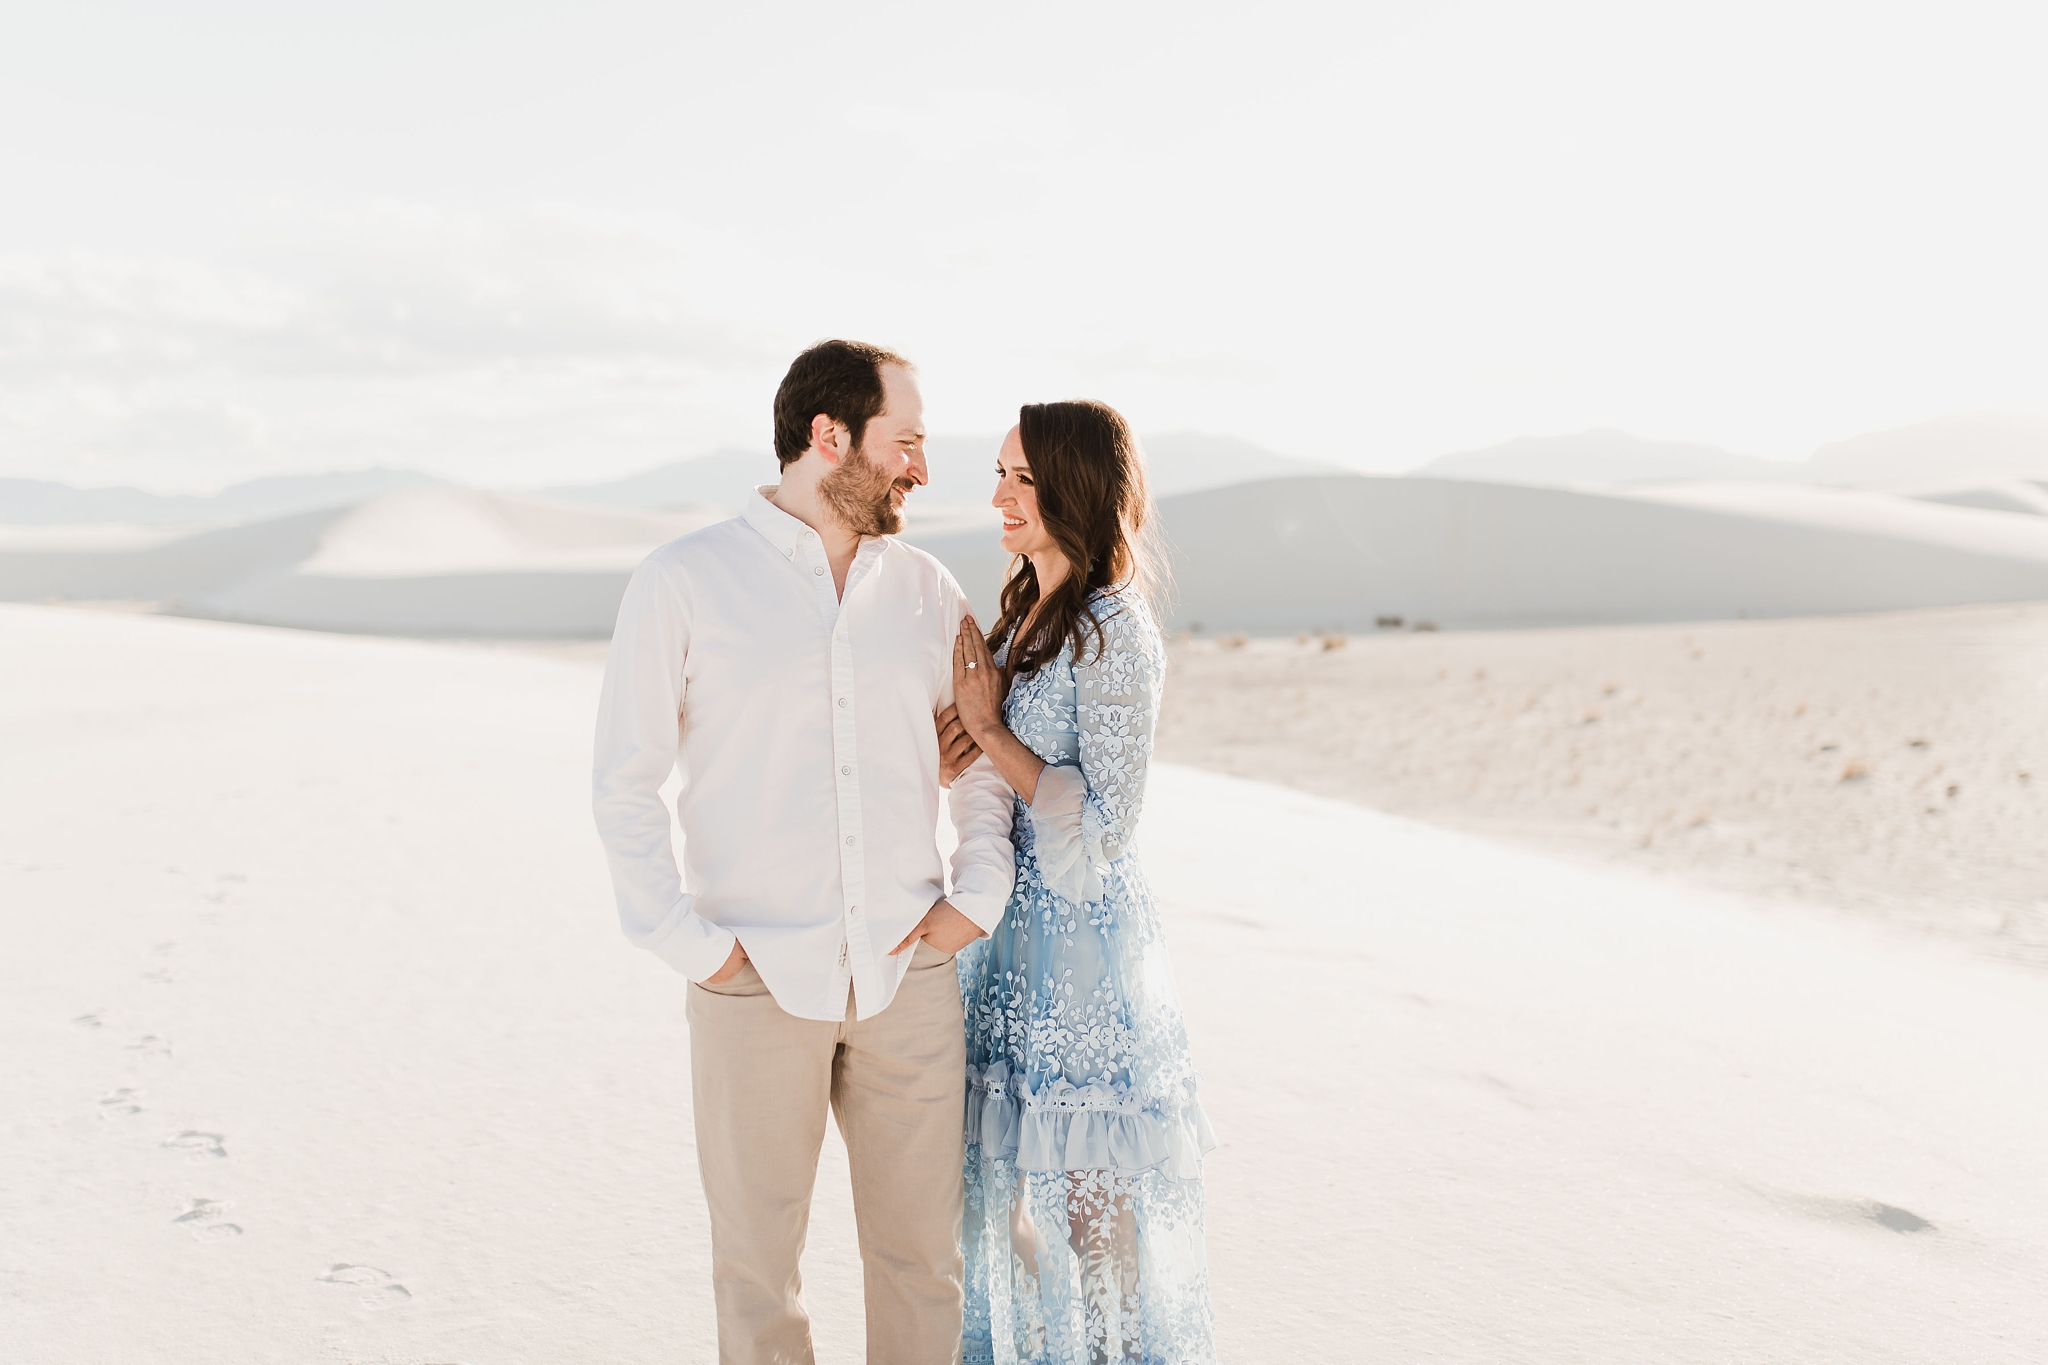 Alicia+lucia+photography+-+albuquerque+wedding+photographer+-+santa+fe+wedding+photography+-+new+mexico+wedding+photographer+-+new+mexico+wedding+-+new+mexico+engagement+-+white+sands+engagement+-+white+sands+national+monument_0001.jpg